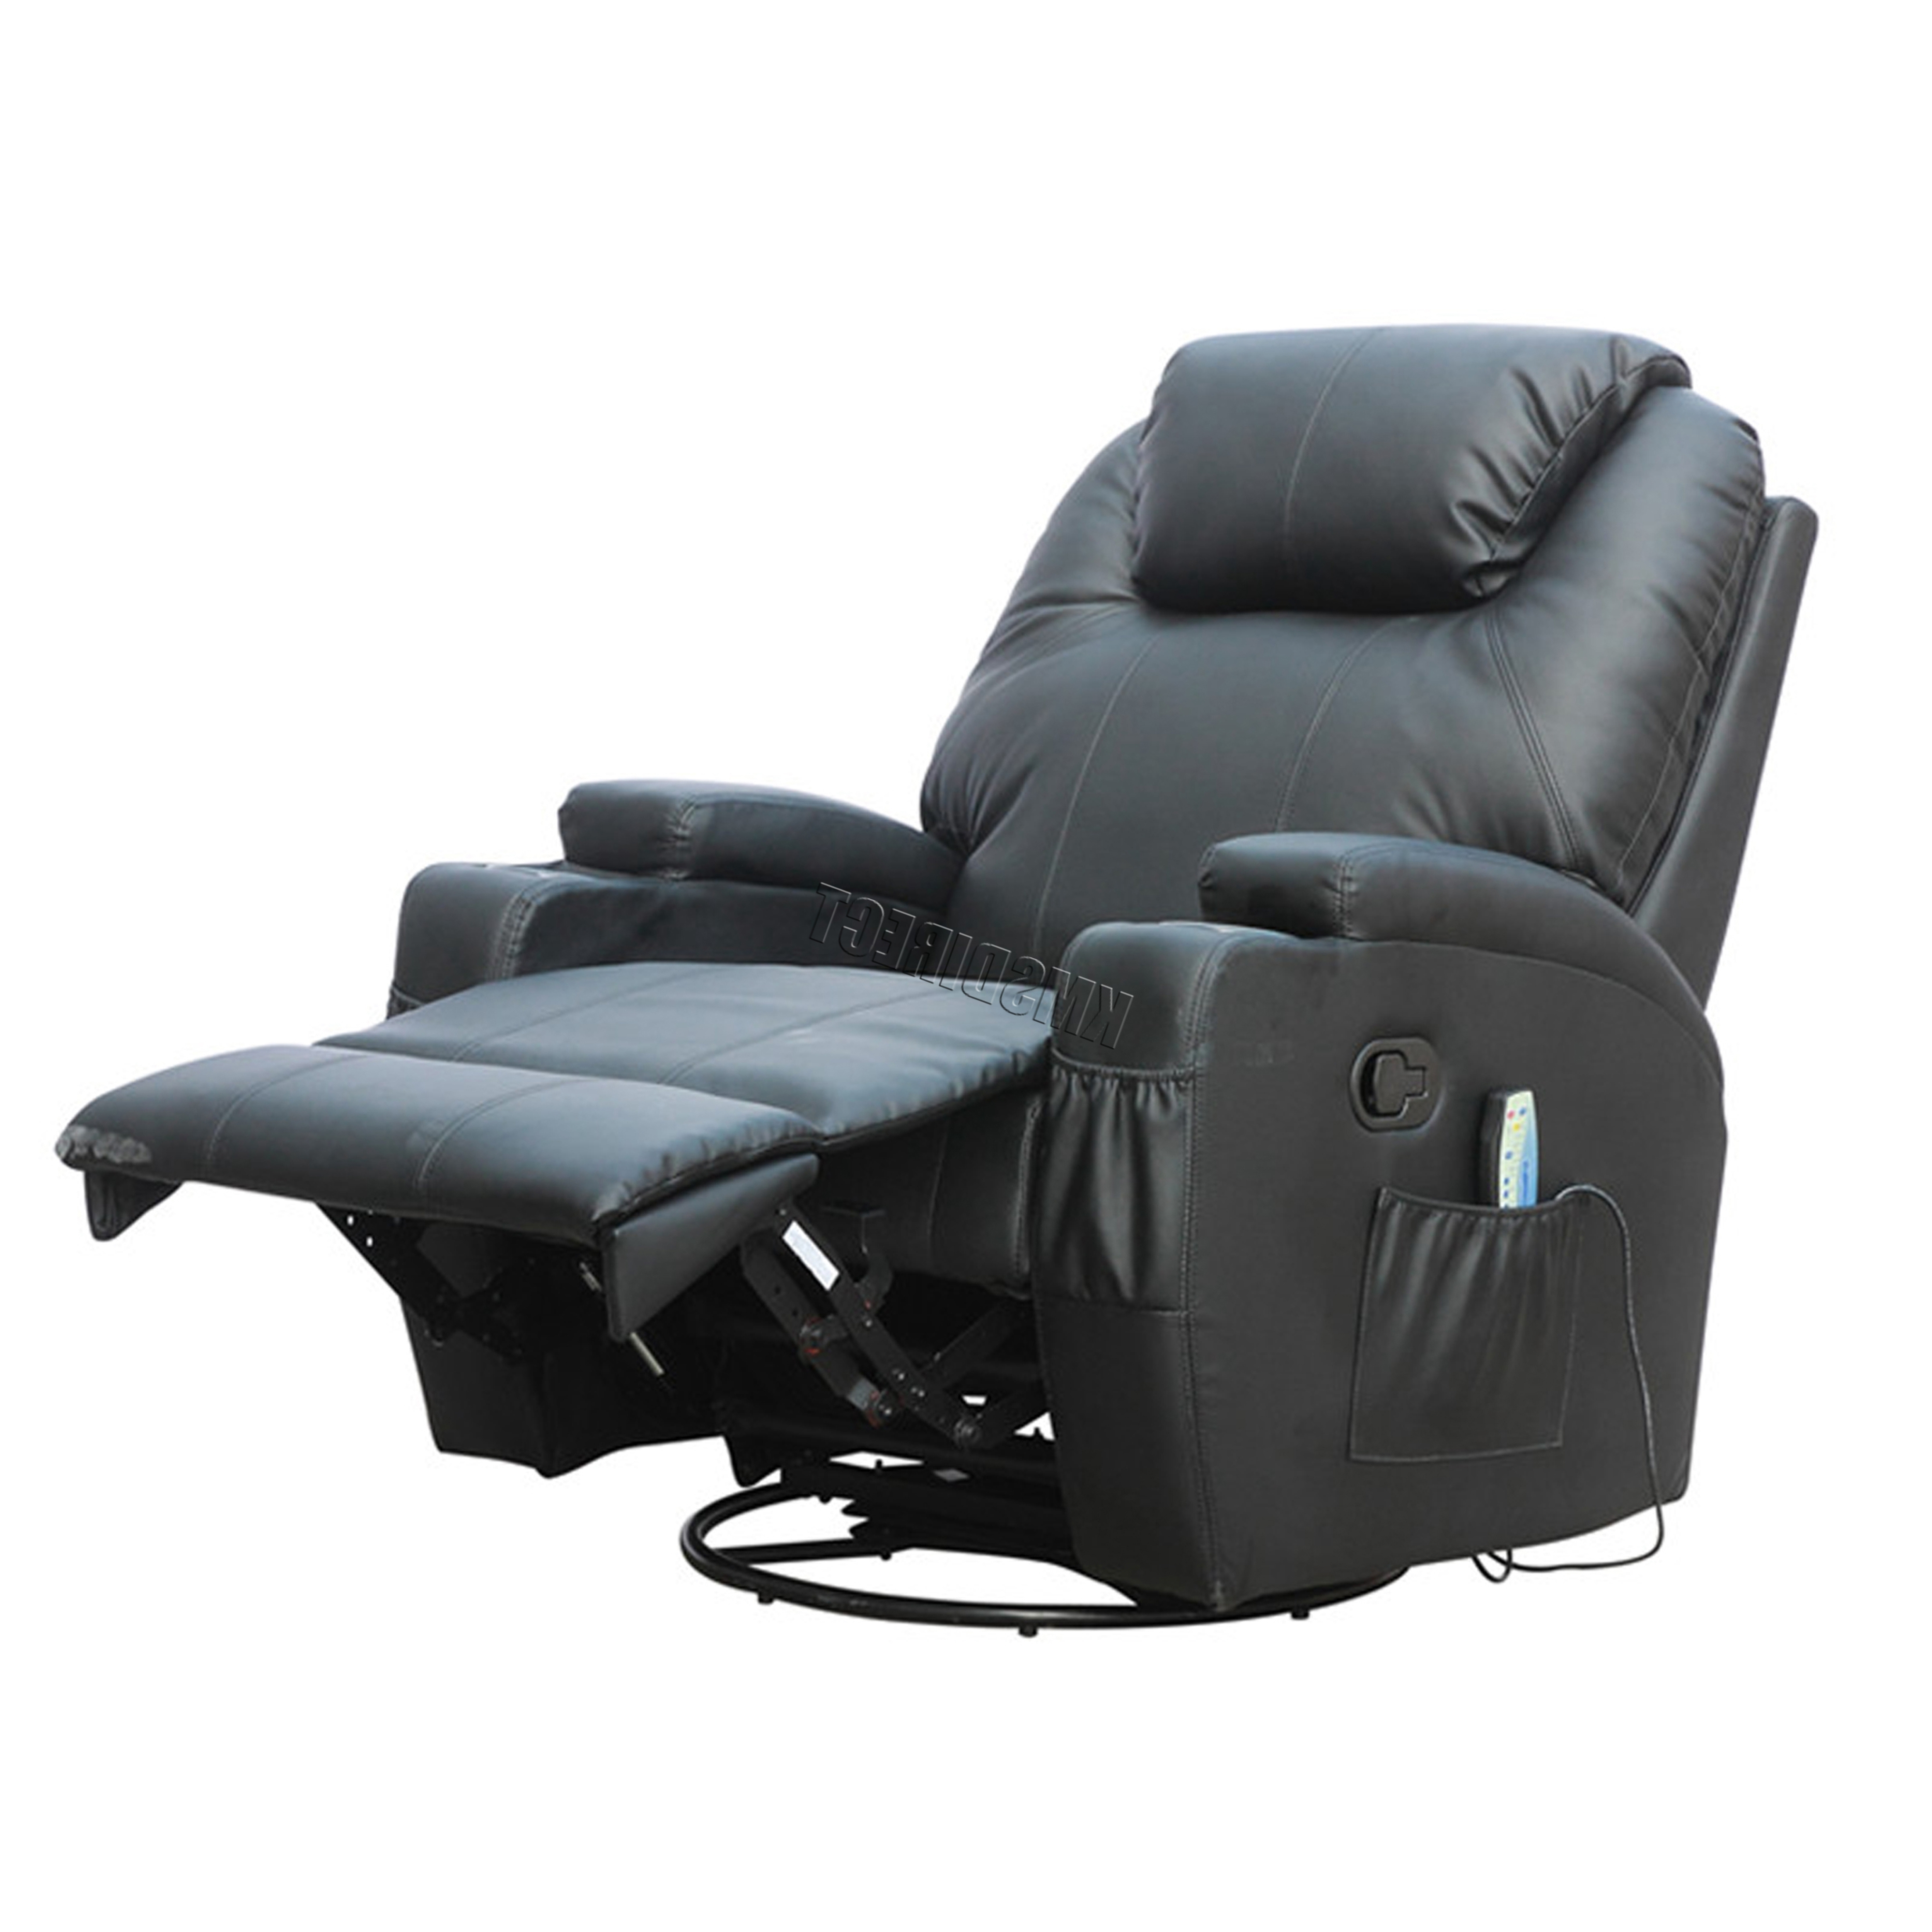 Preferred Gaming Sofa Chairs With Foxhunter Bonded Leather Sofa Massage Recliner Chair Swivel (View 14 of 20)